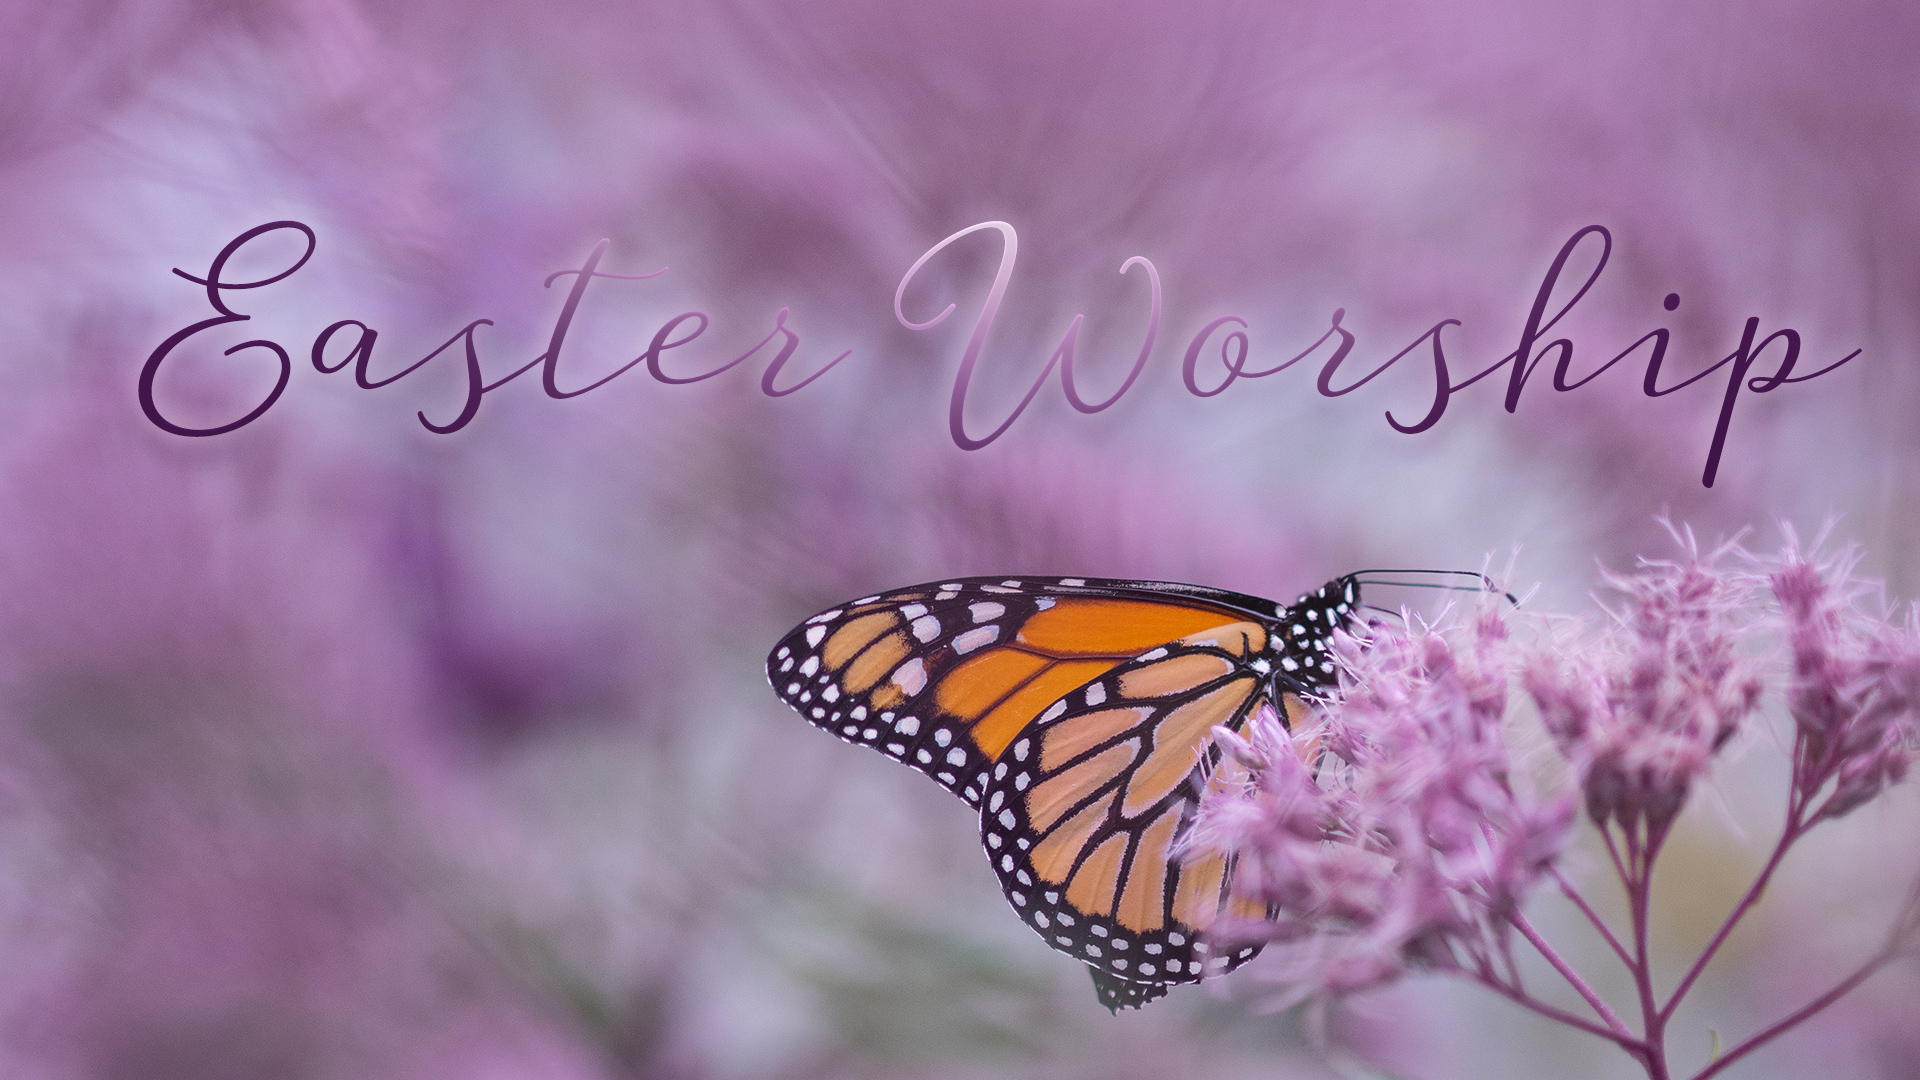 Butterfly on flower with Easter Worship text